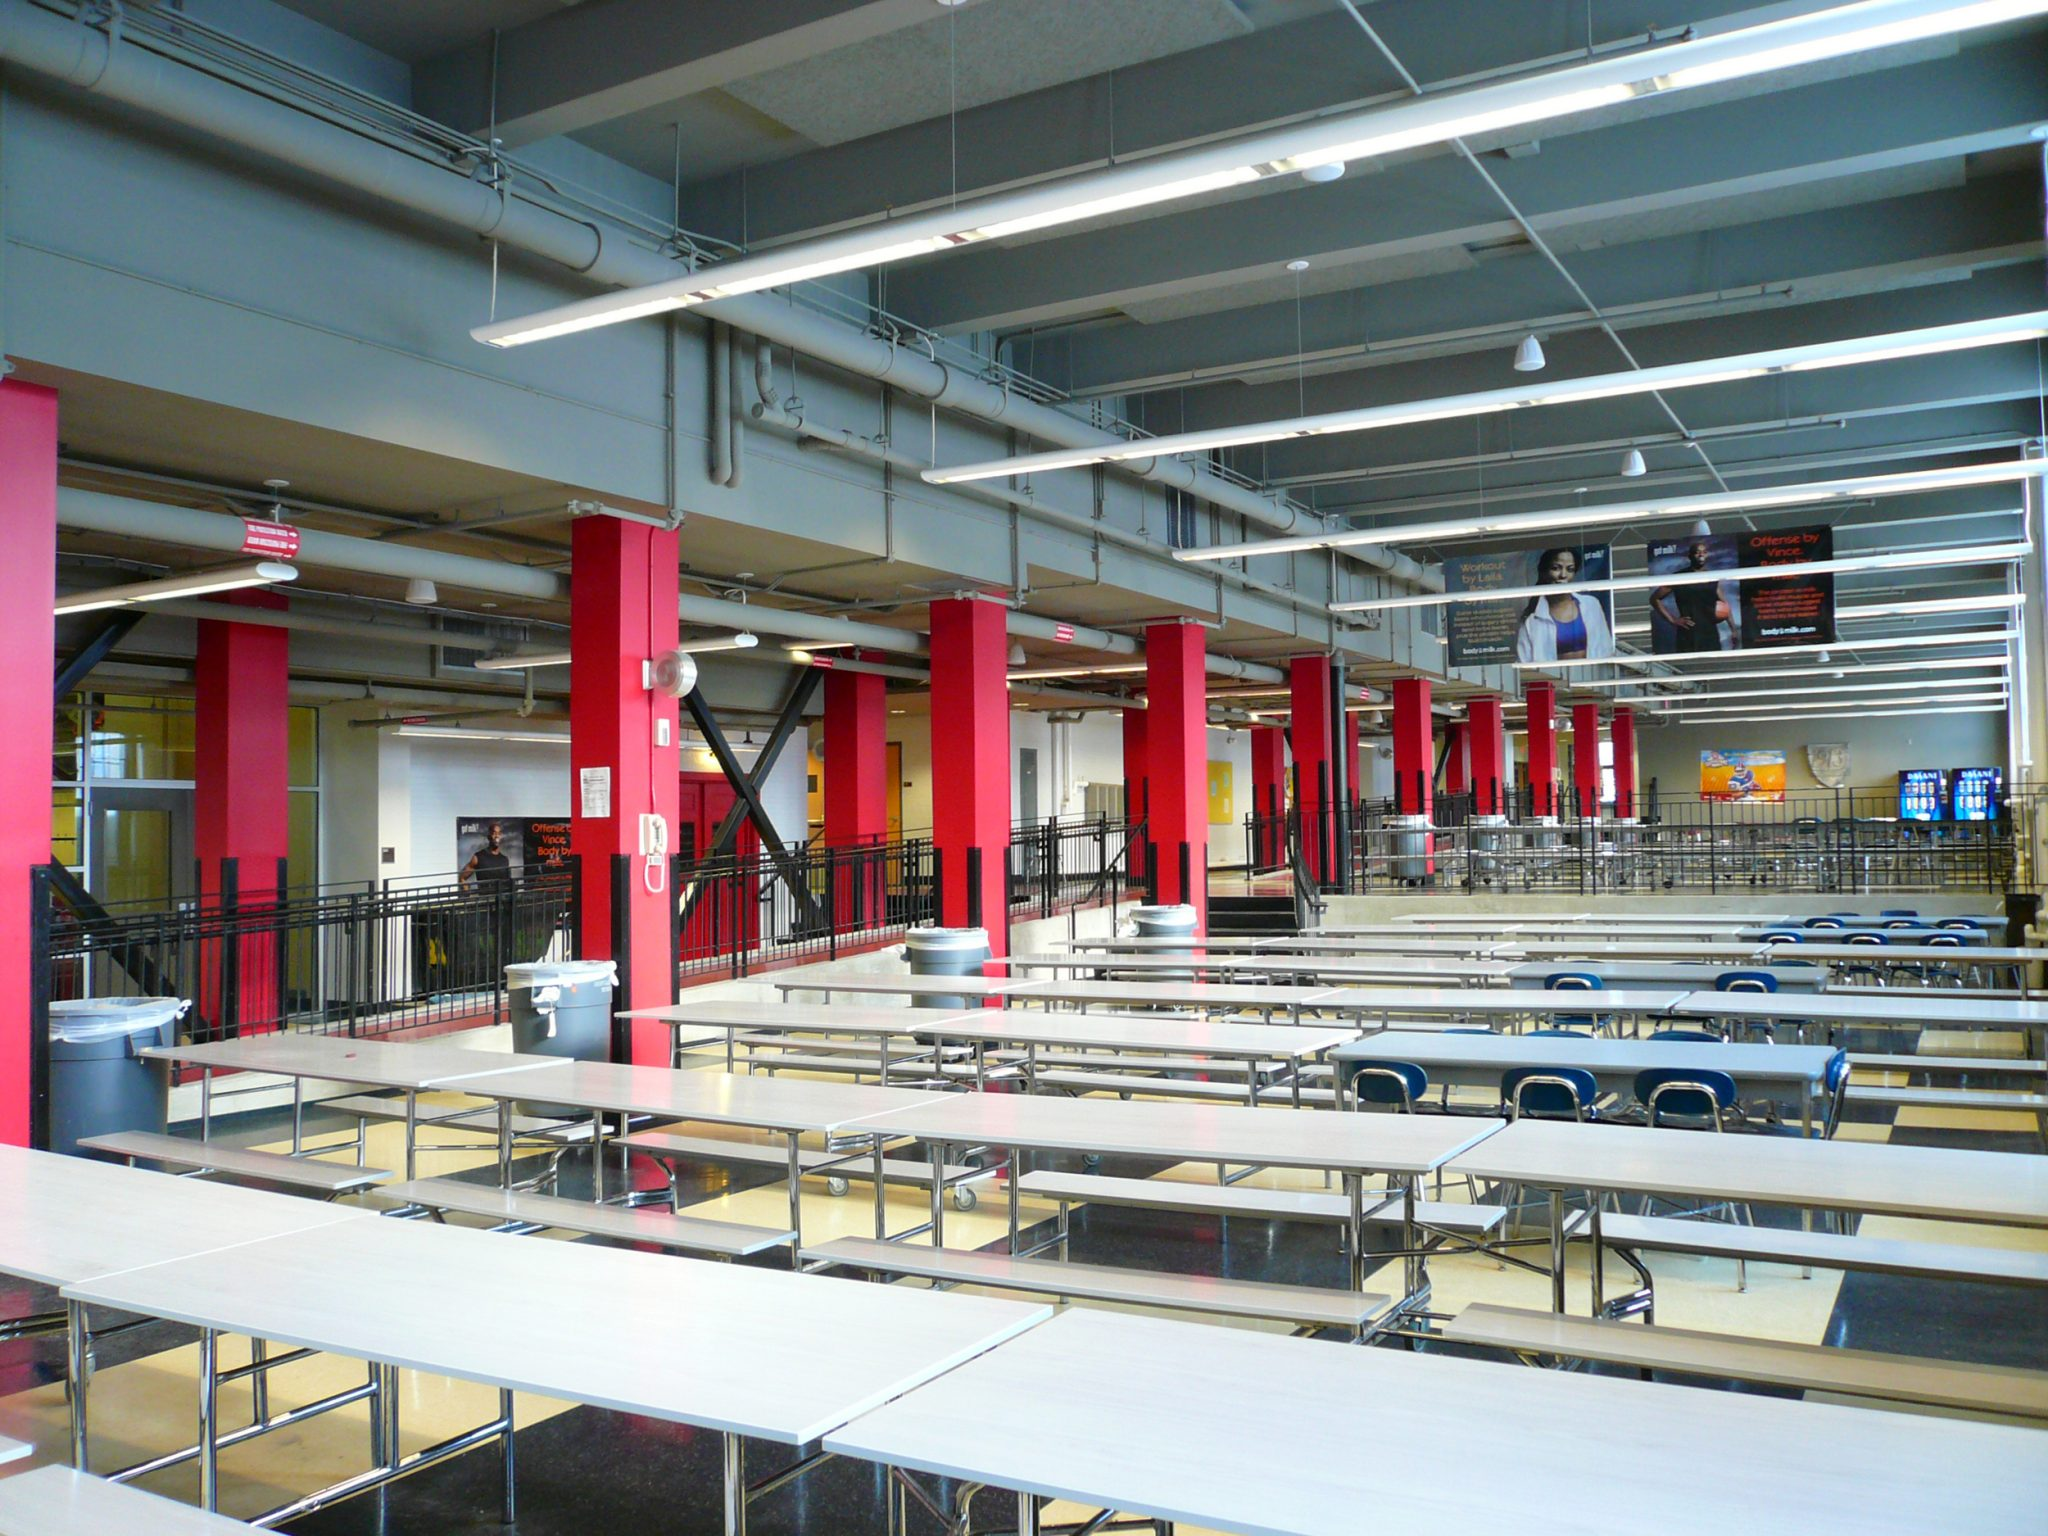 Buffalo public school no 304 hutchinson central technical - Interior design schools buffalo ny ...